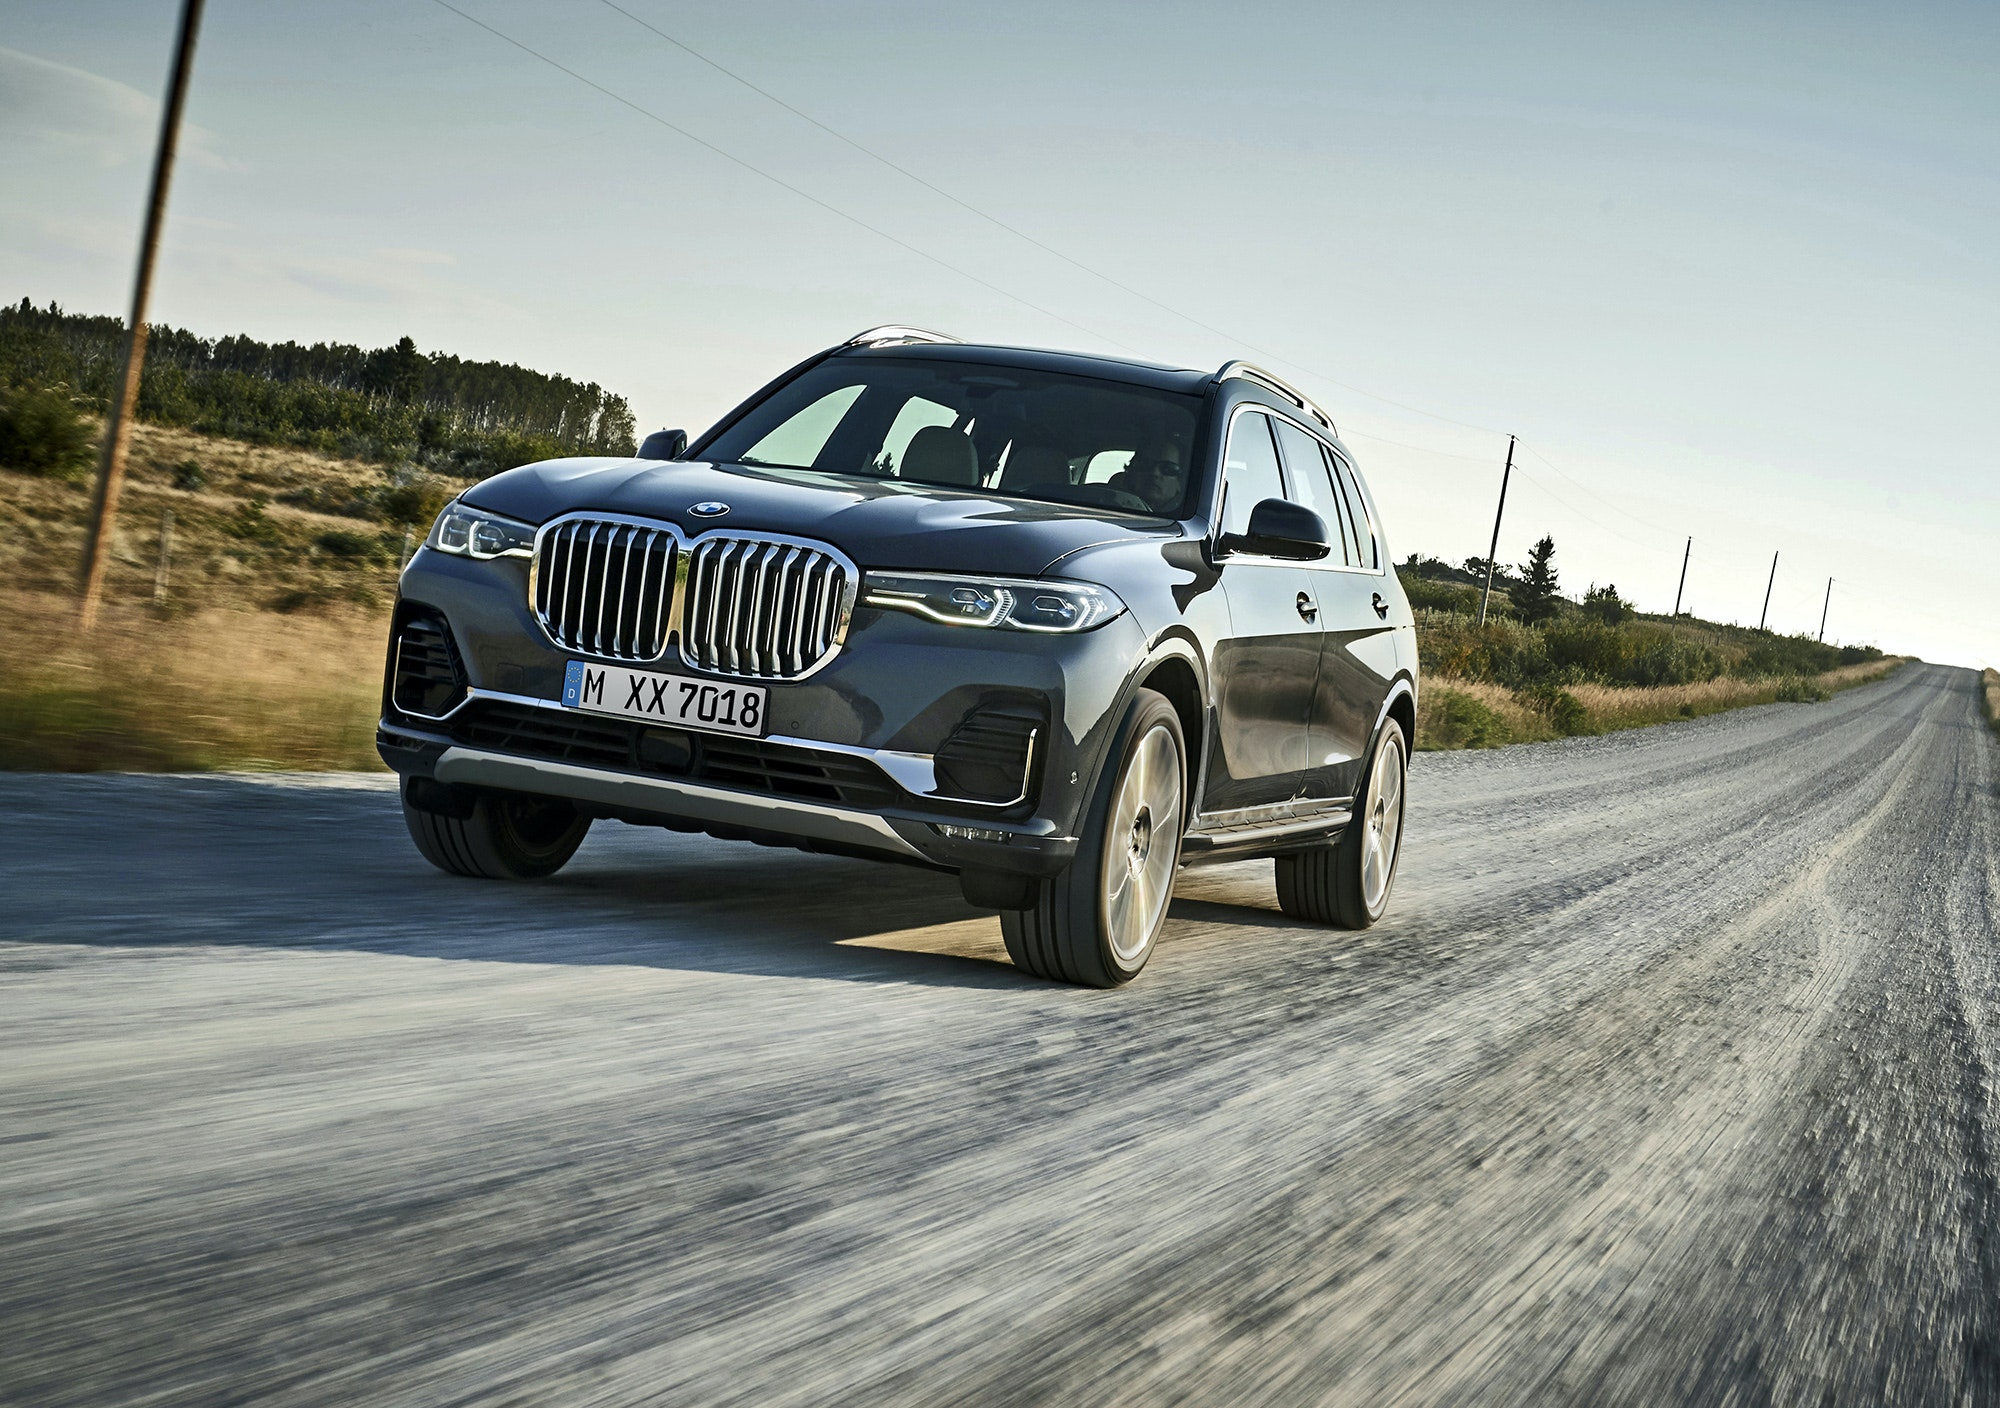 2018-19 bmw x7 price, specs and release date | carwow